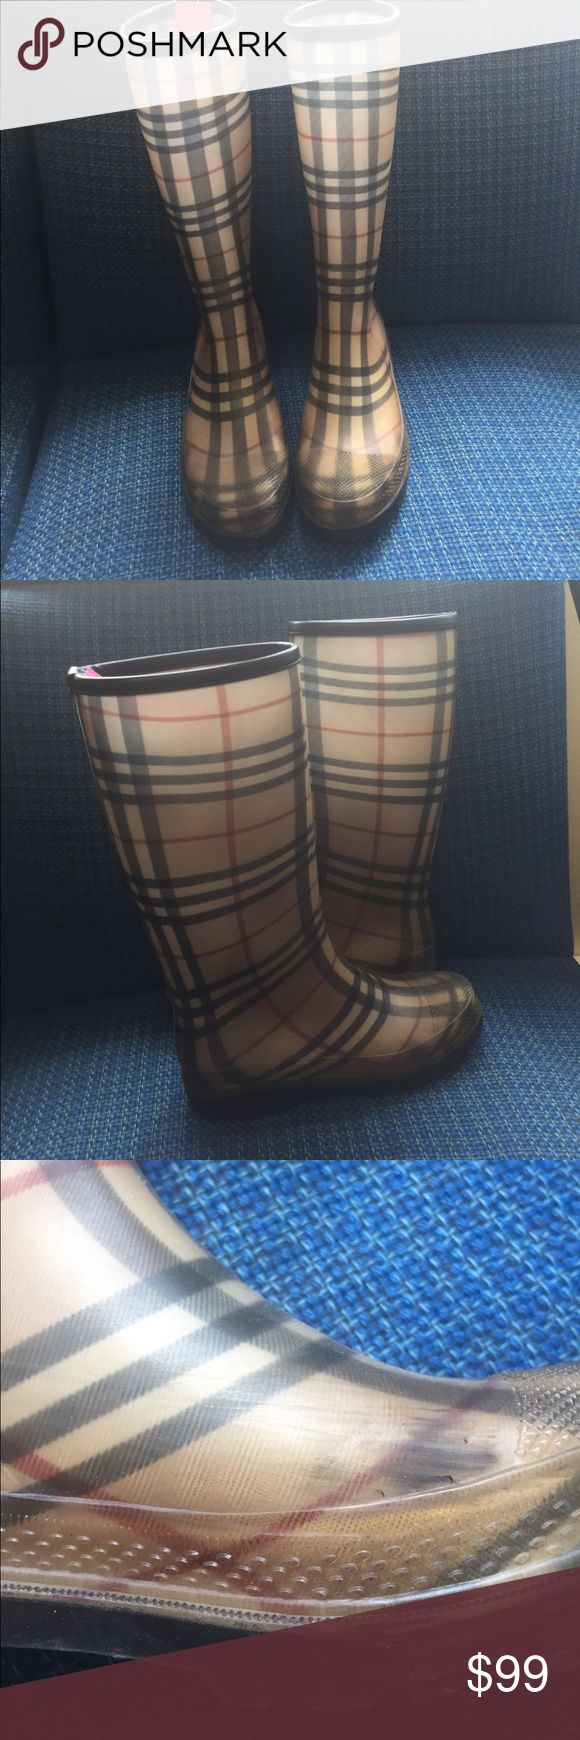 Burberry plaid rain boots size 8 Burberry plaid rain boots size 8 scratches on the inside of both see pictures Burberry Shoes Winter & Rain Boots